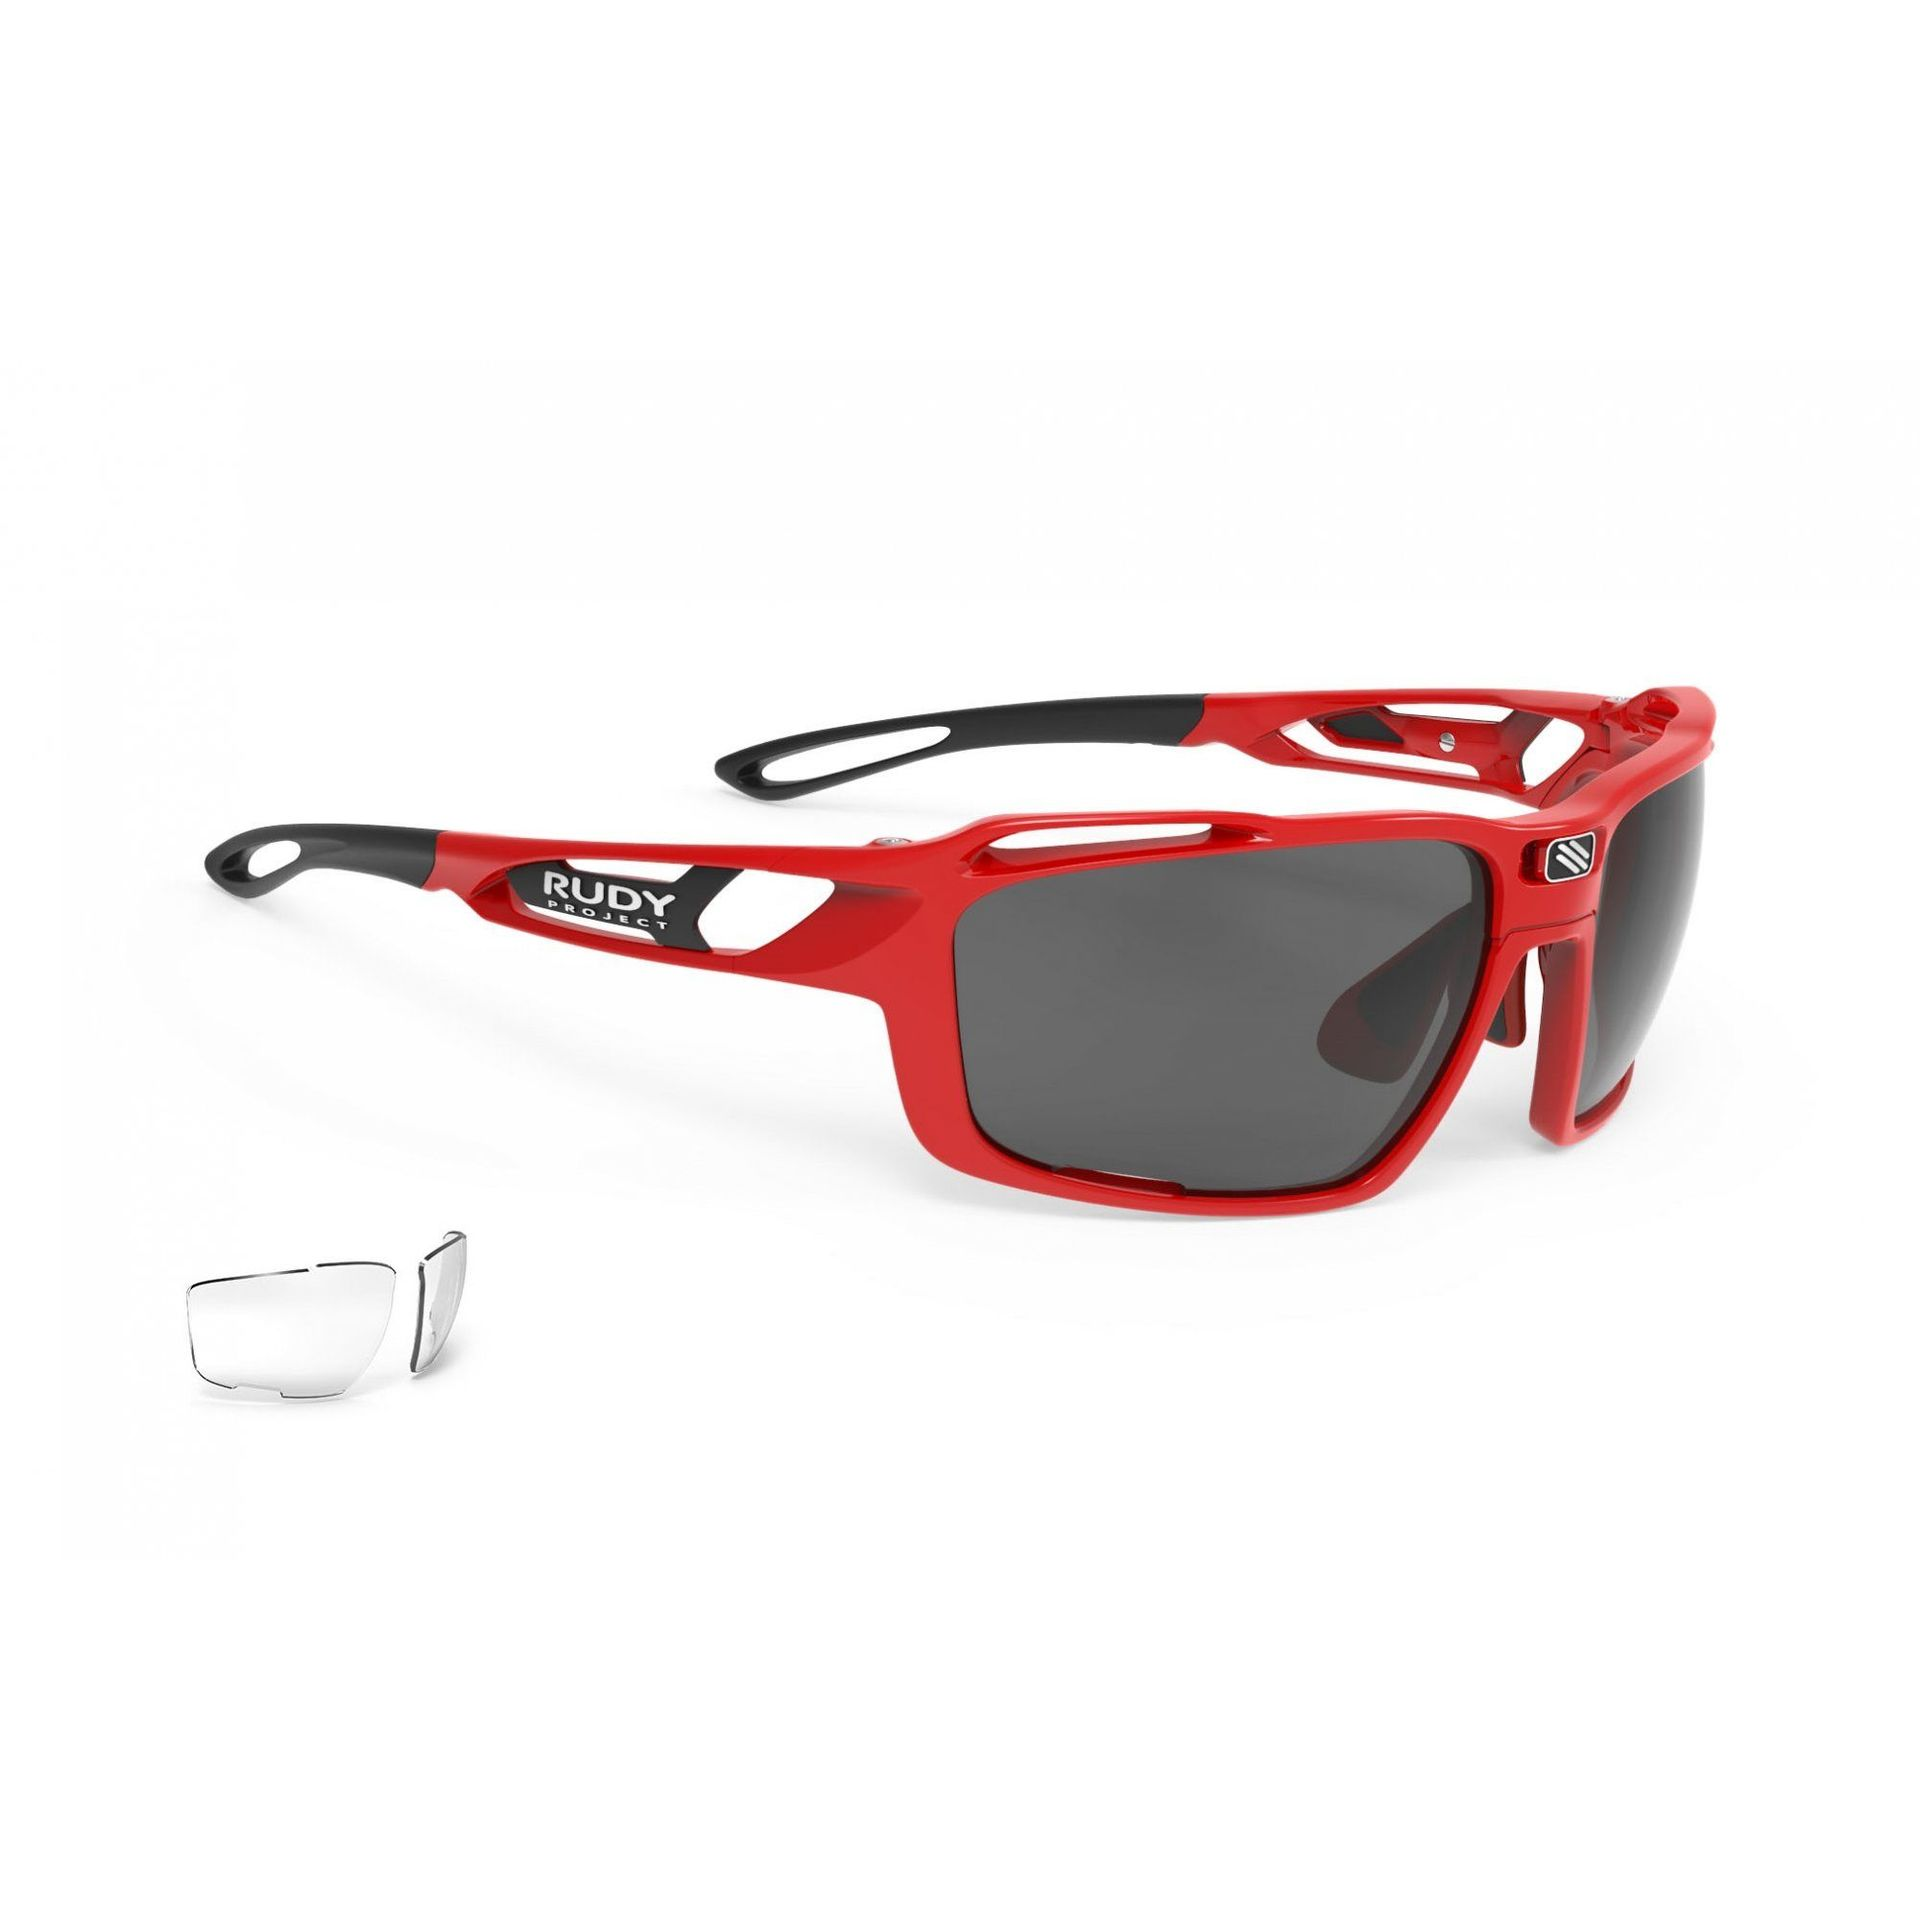 OKULARY RUDY PROJECT SINTRYX FIRE RED + SMOKE|TRANS SP491045 1